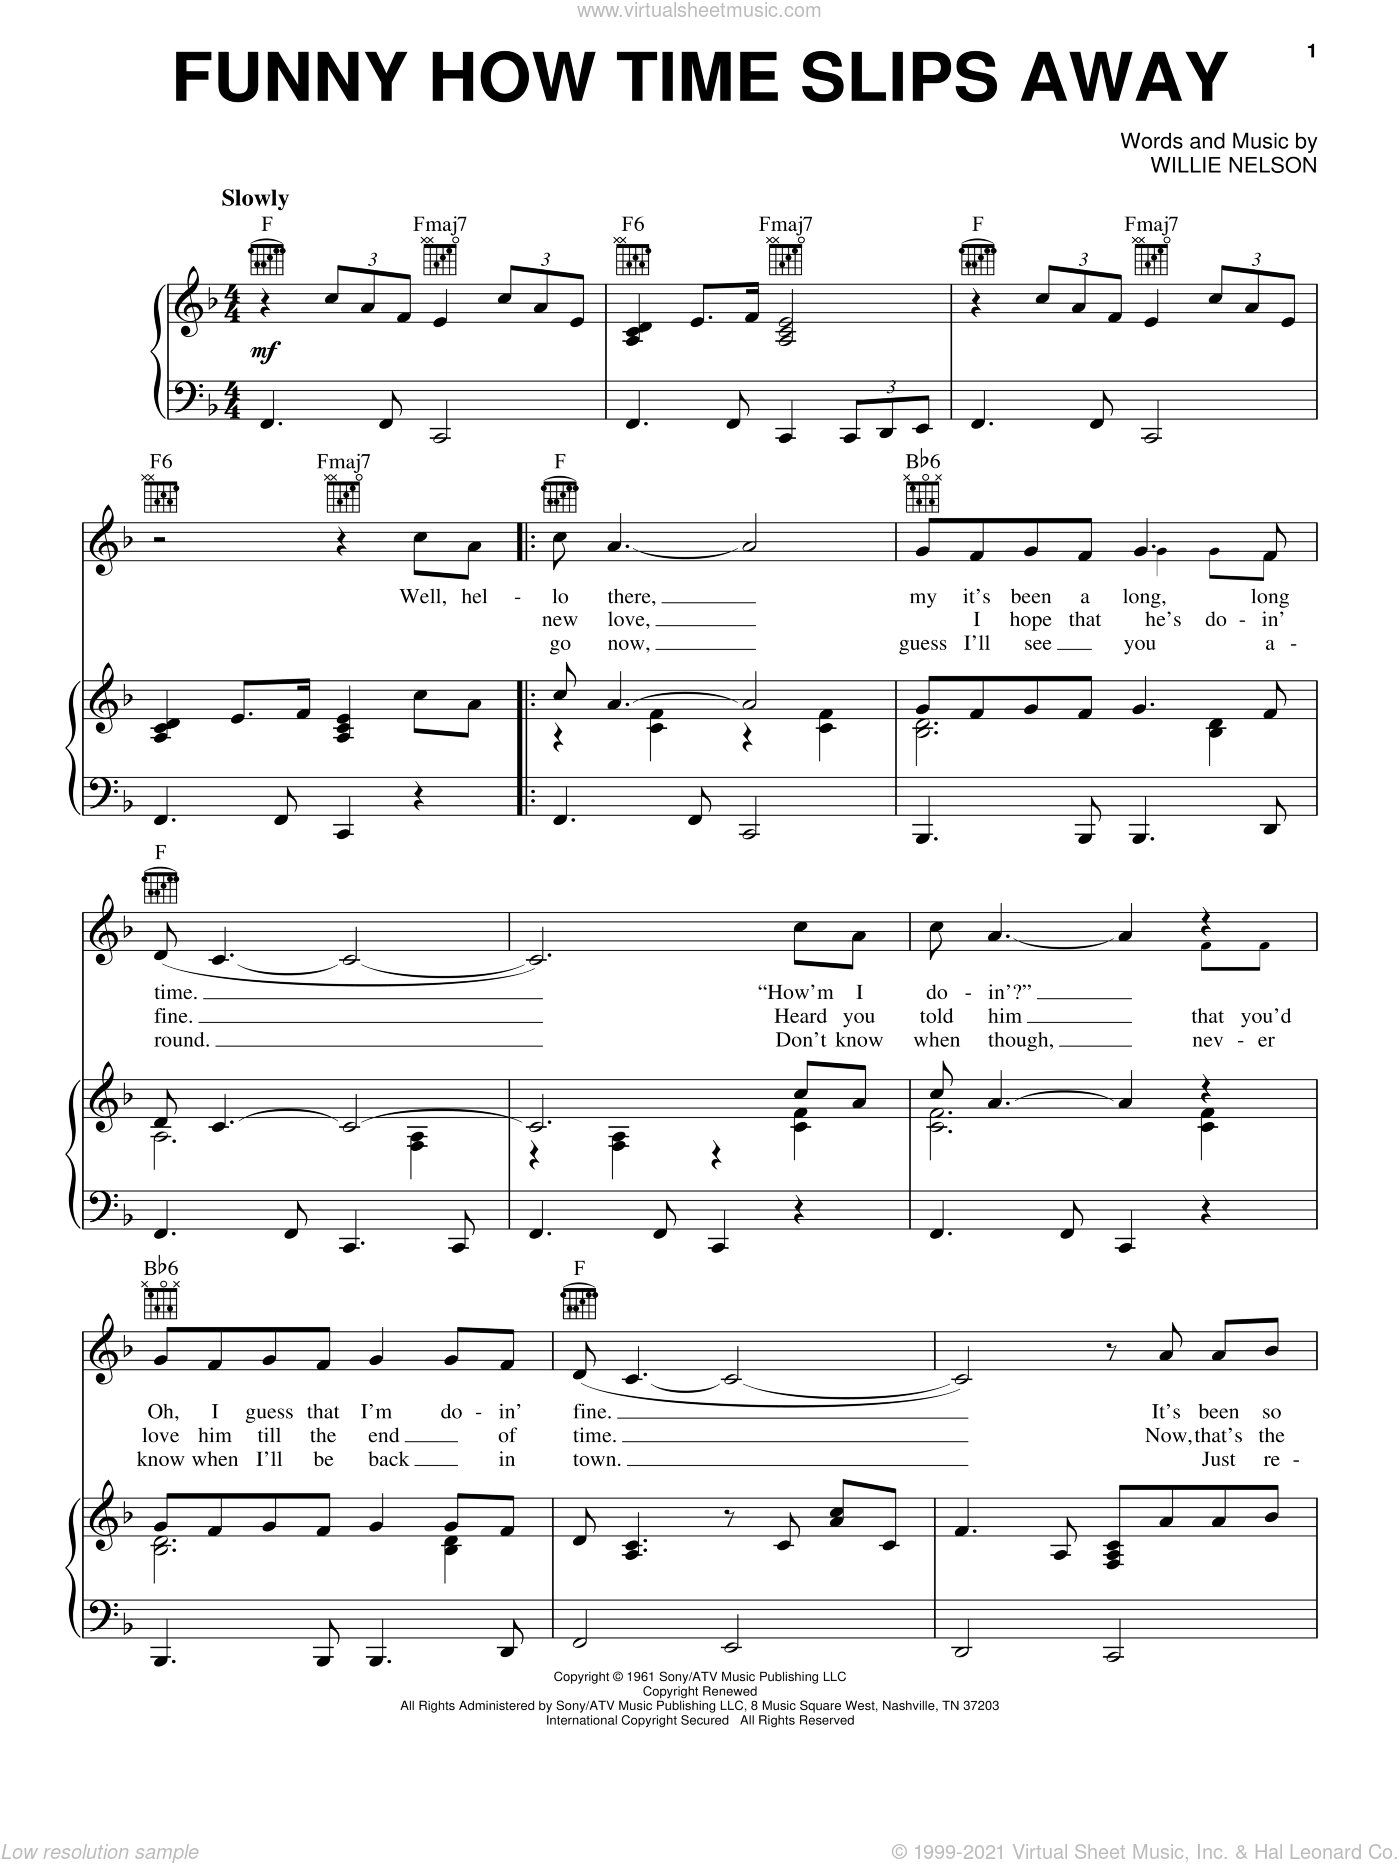 Funny How Time Slips Away sheet music for voice, piano or guitar by Elvis Presley, Billy Walker and Willie Nelson, intermediate skill level